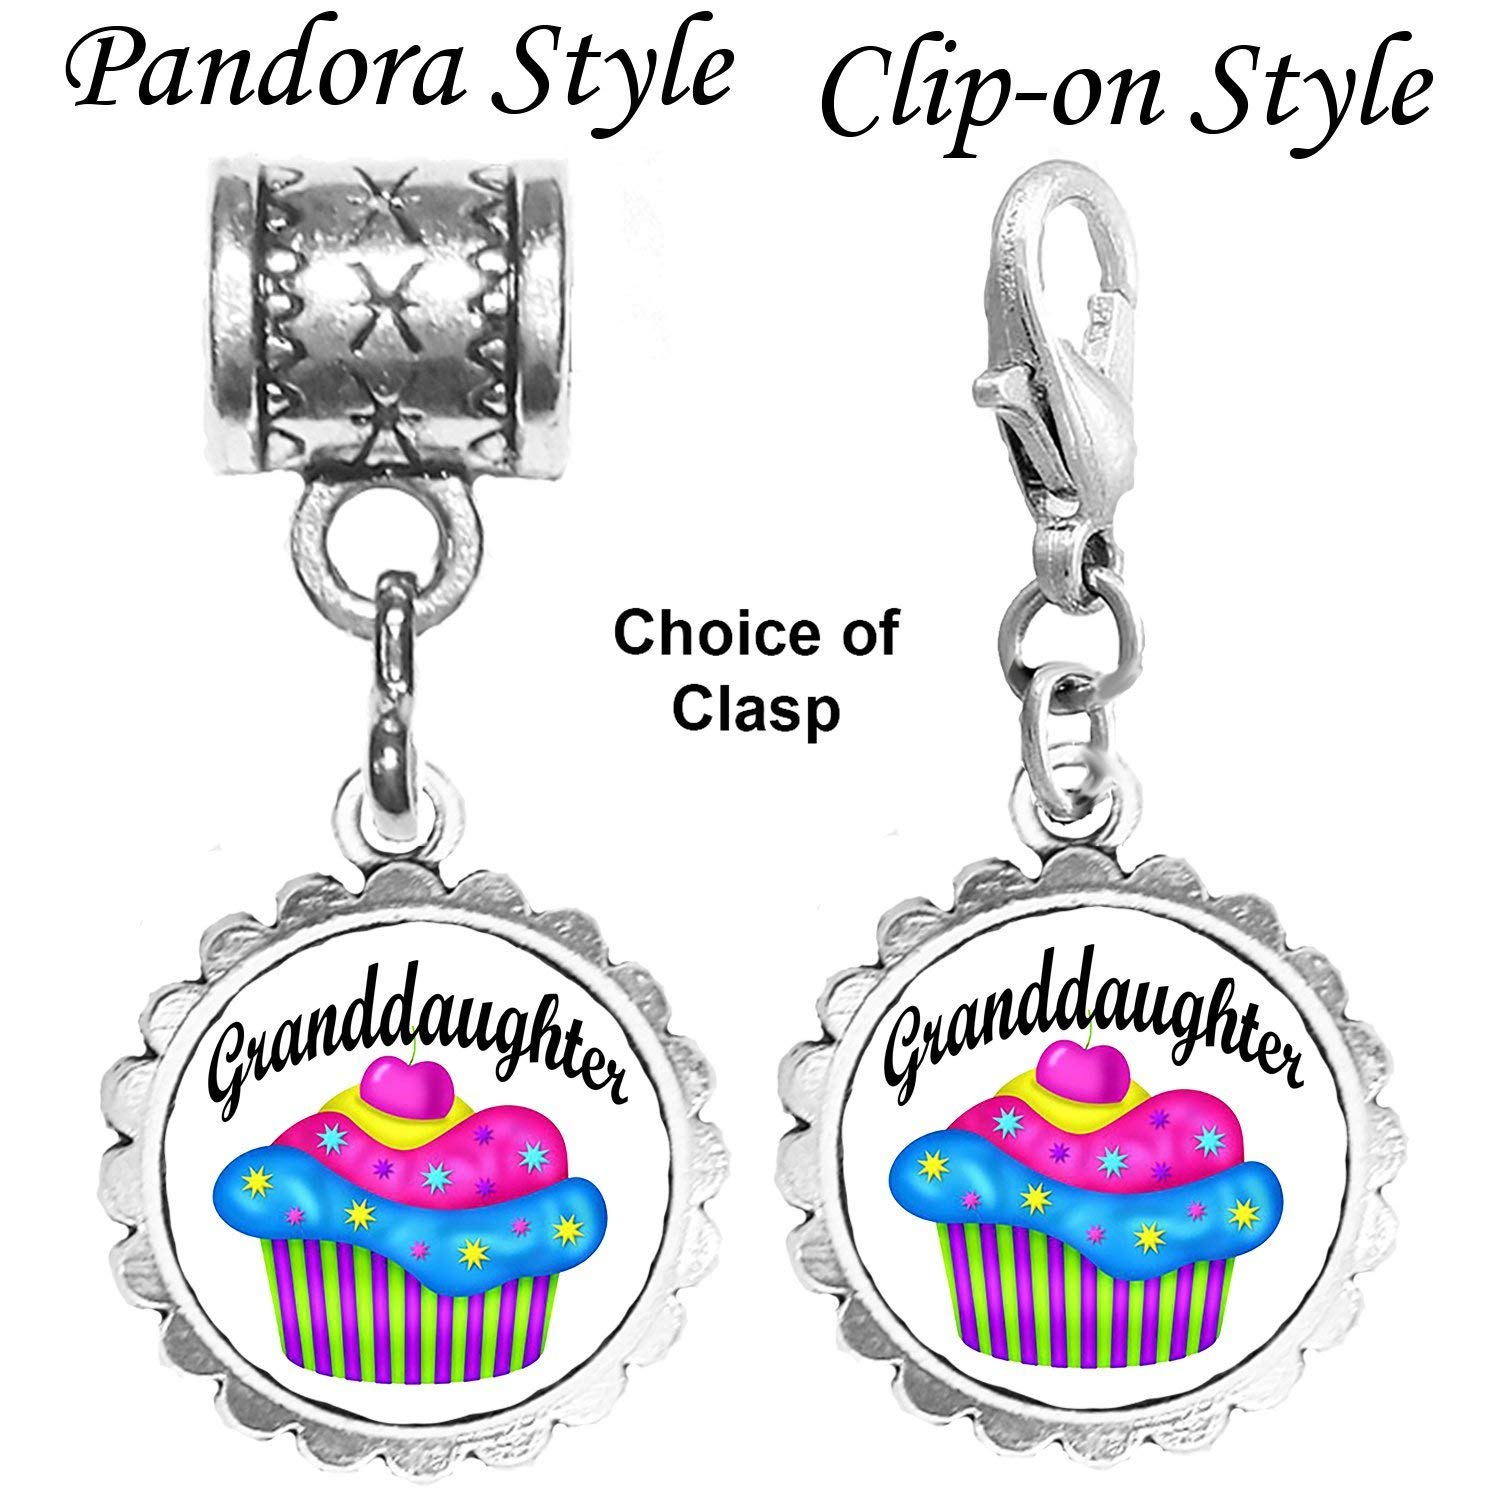 Silver granddaughter cupcake charm OR cupcake charm by Mossy Cabin. This charm will fit a large hole style snake chain bracelet. Also available with a clip-on clasp for chain bracelets